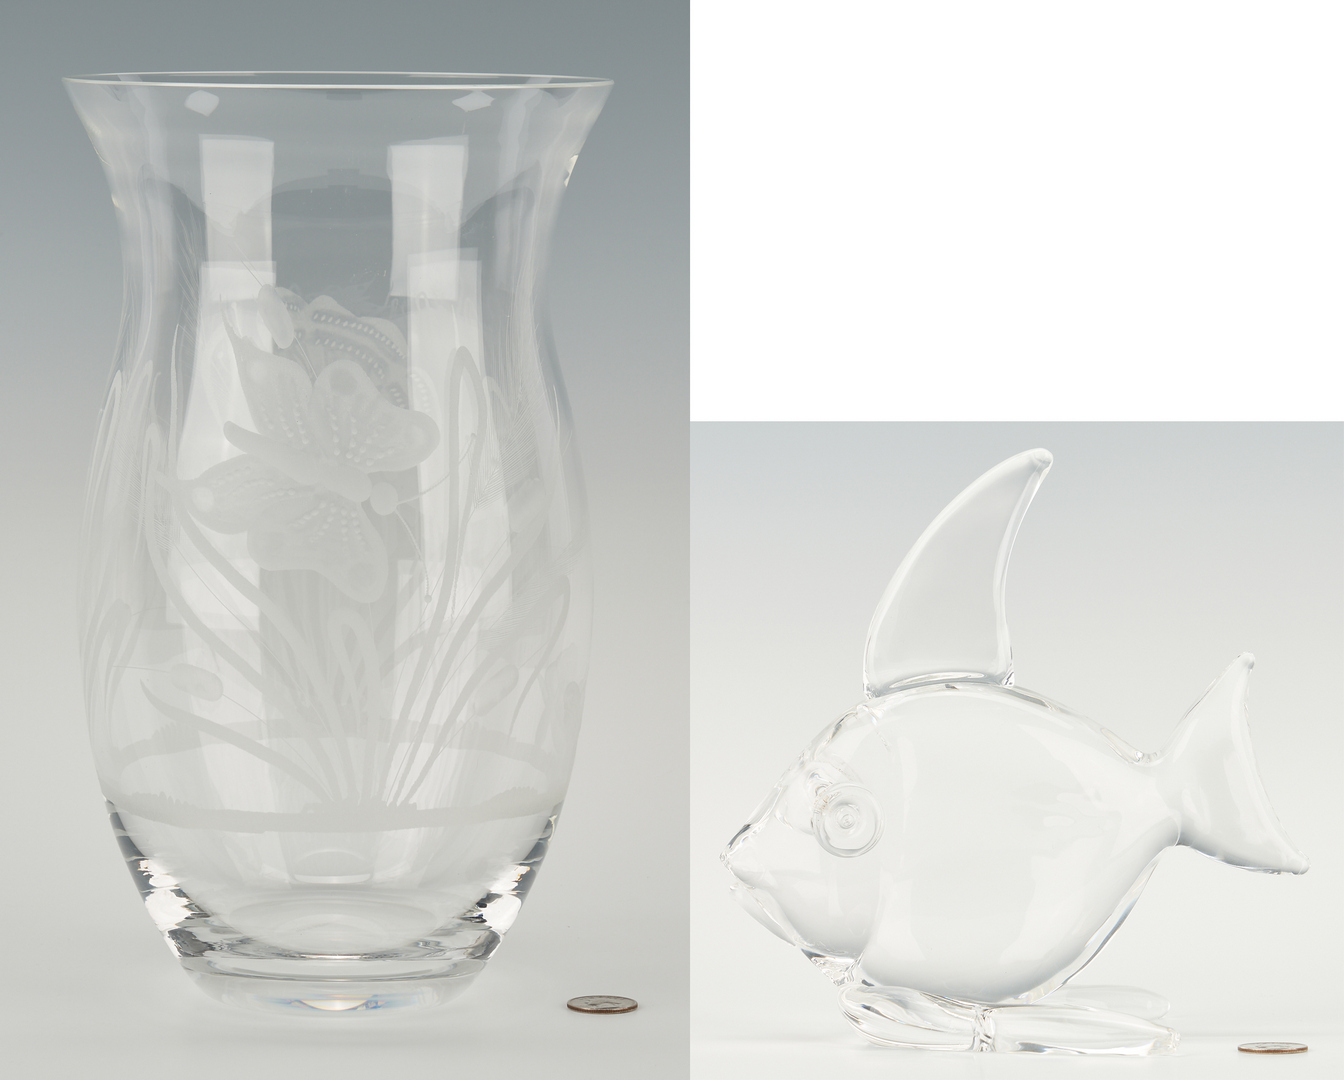 Lot 550: Tiffany & Co. Etched Glass Vase & Steuben Glass Fish